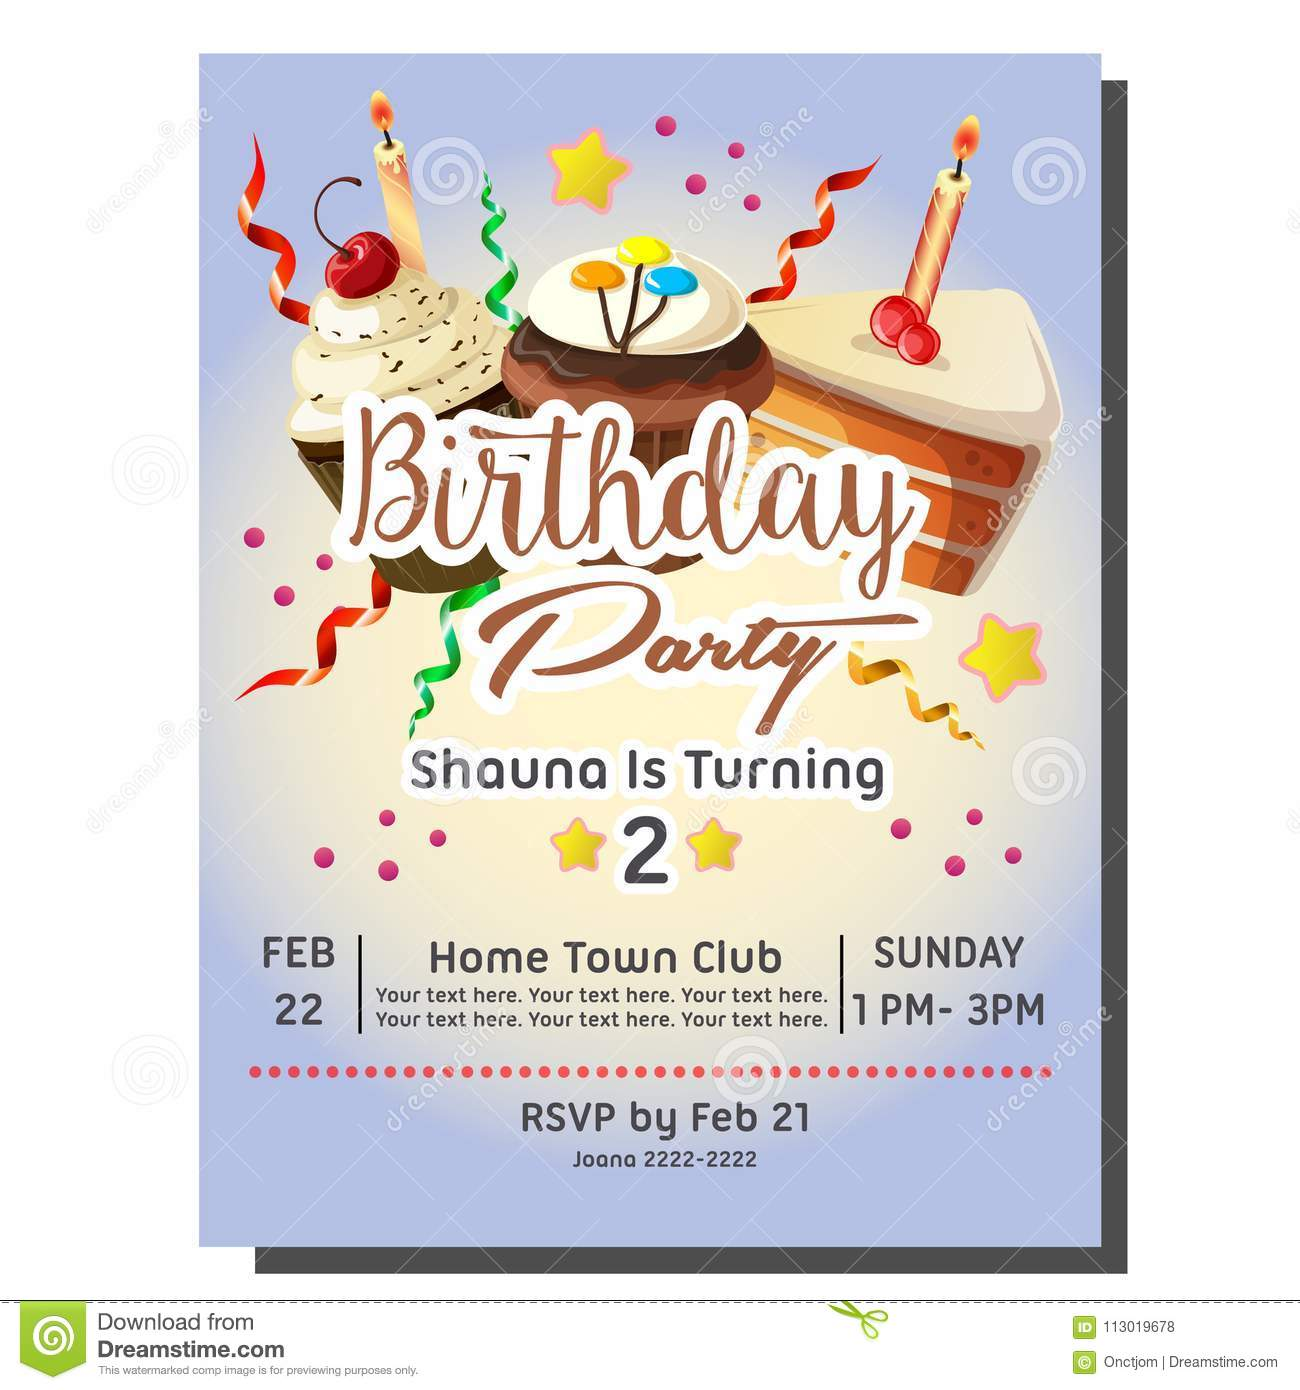 2nd Birthday Party Invitation Card Template With Cupcakes